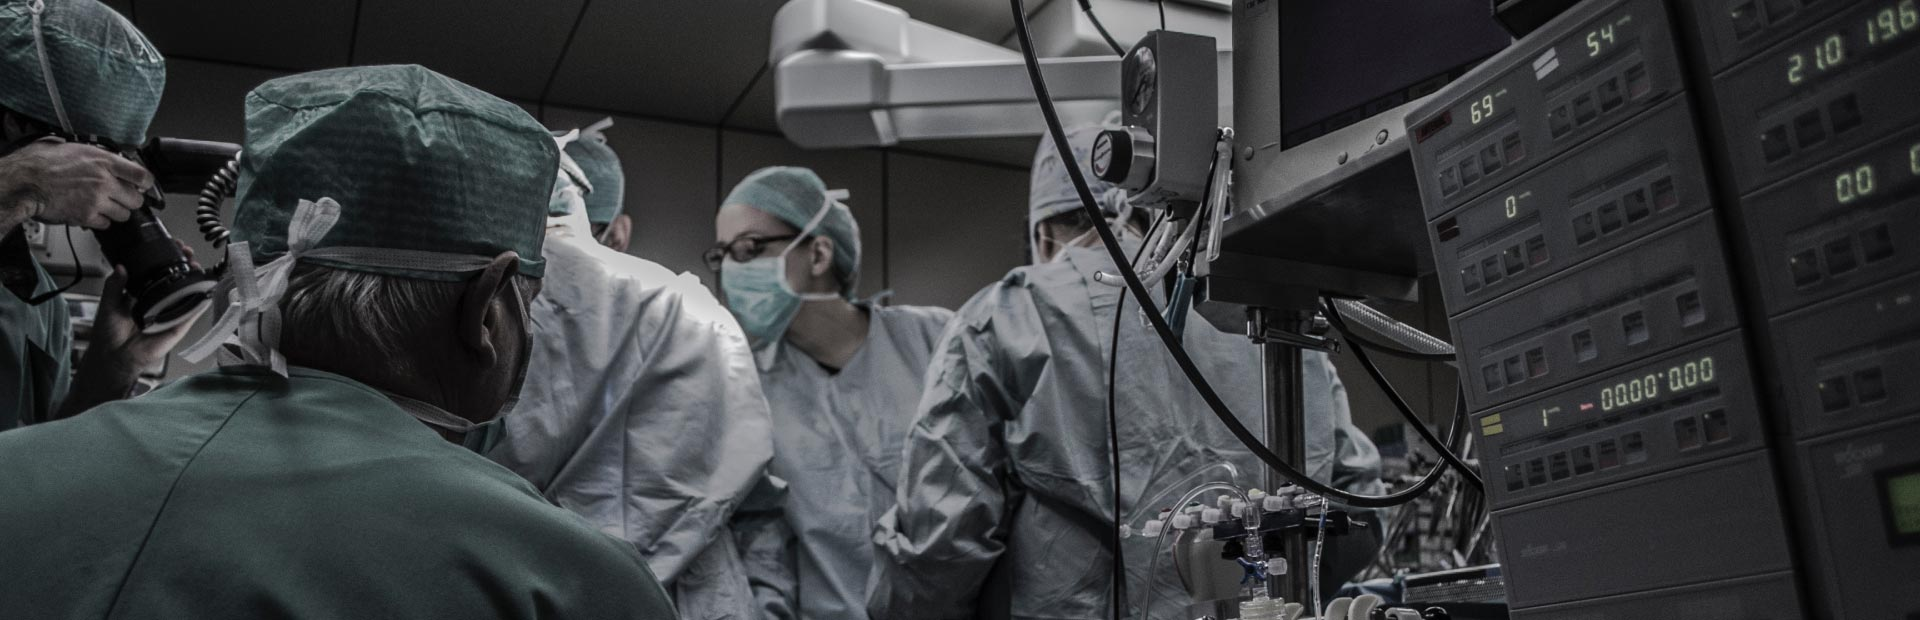 Surgeons in the operating room - JCMG